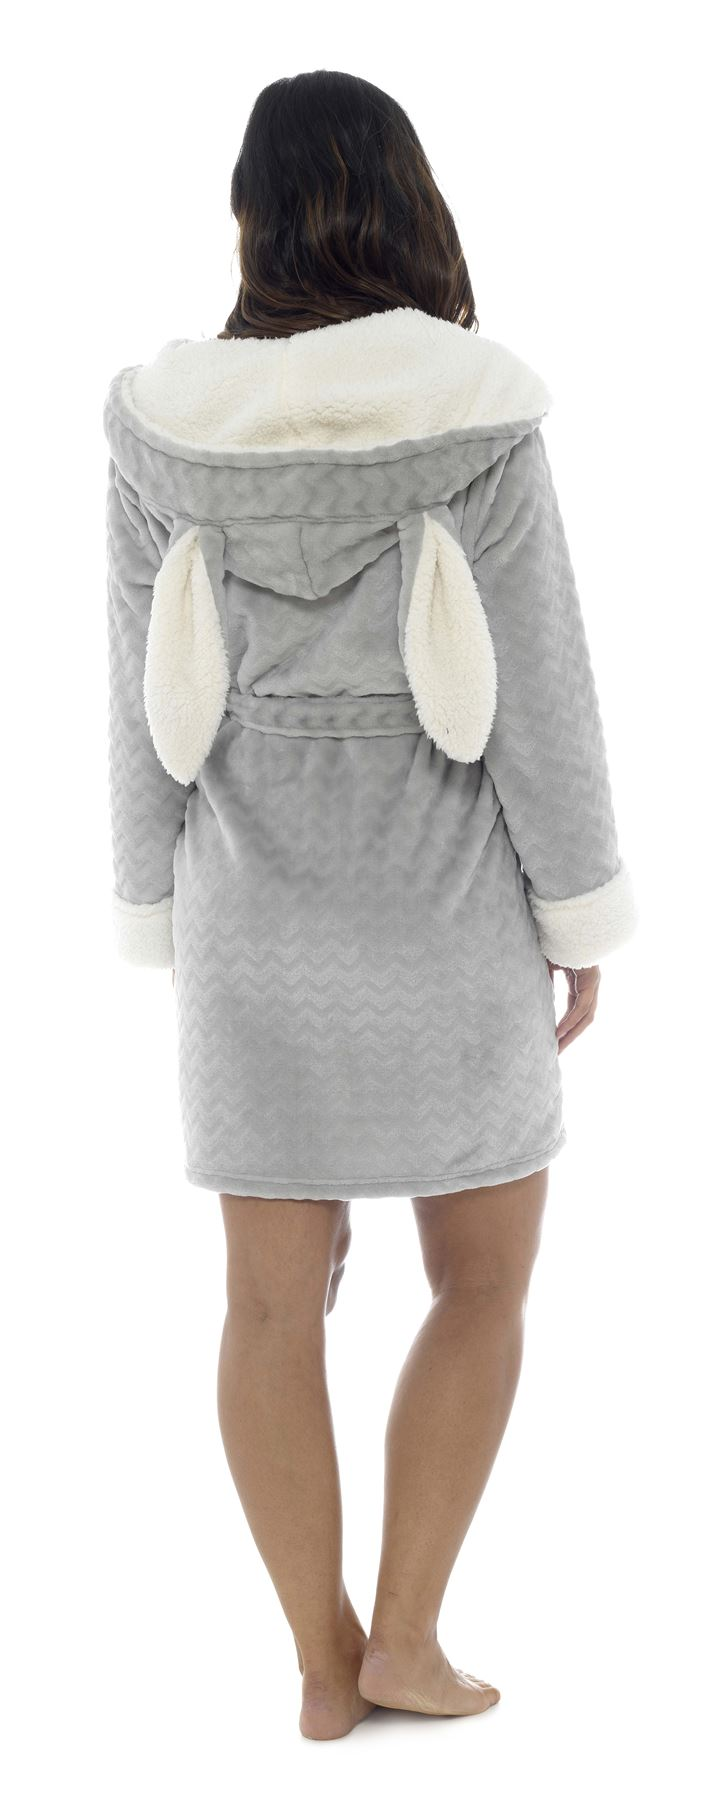 83b95147092b0 Women-039-s-Bunny-Hooded-Robe-Dressing-Gown-